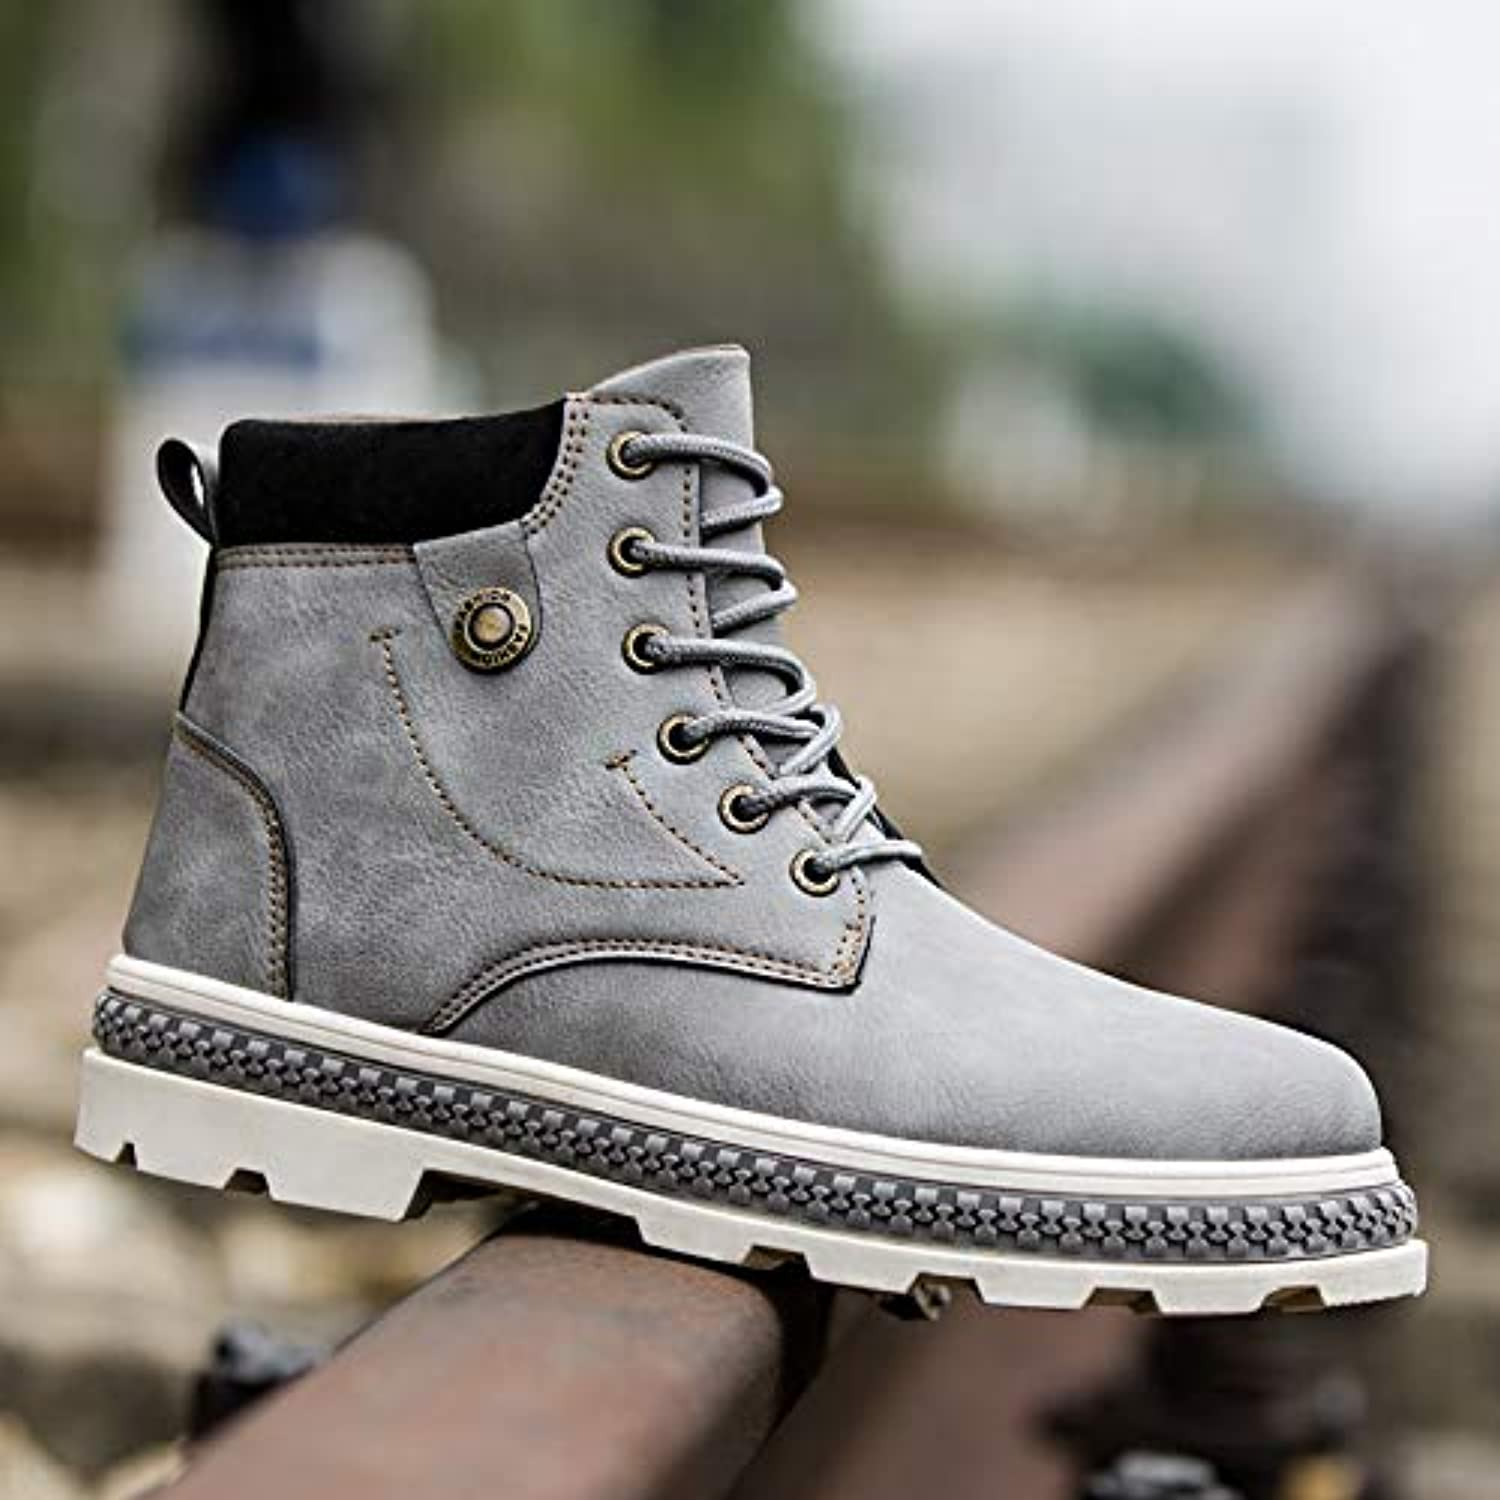 LOVDRAM Boots Men's Autumn And Winter New Military Boots Outdoor Martin Boots Tooling Boots Men'S Casual shoes In The Tube shoes Fashion Non Slip Men'S shoes